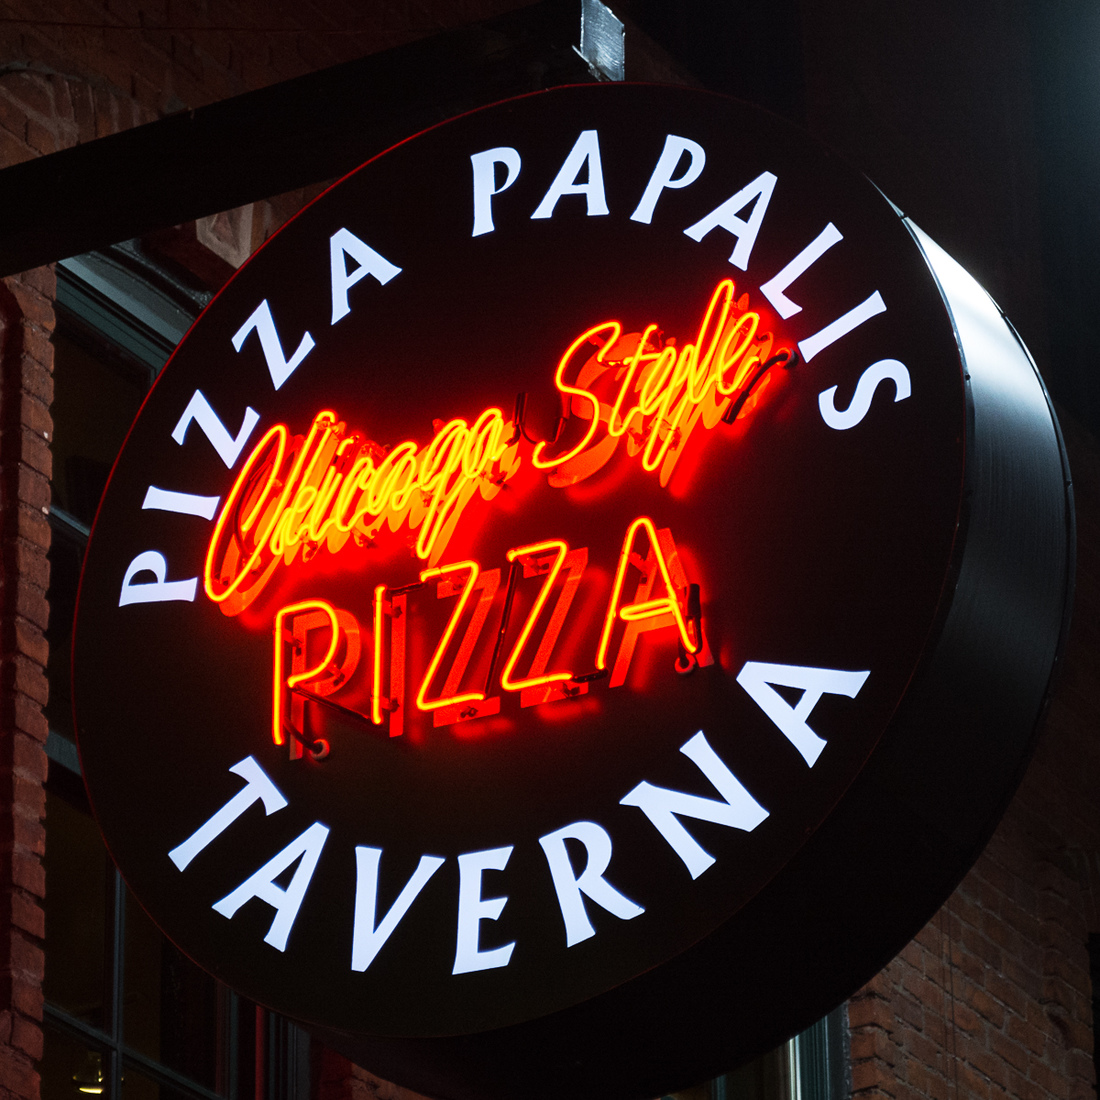 Neon Pizza Papalis - Greektown